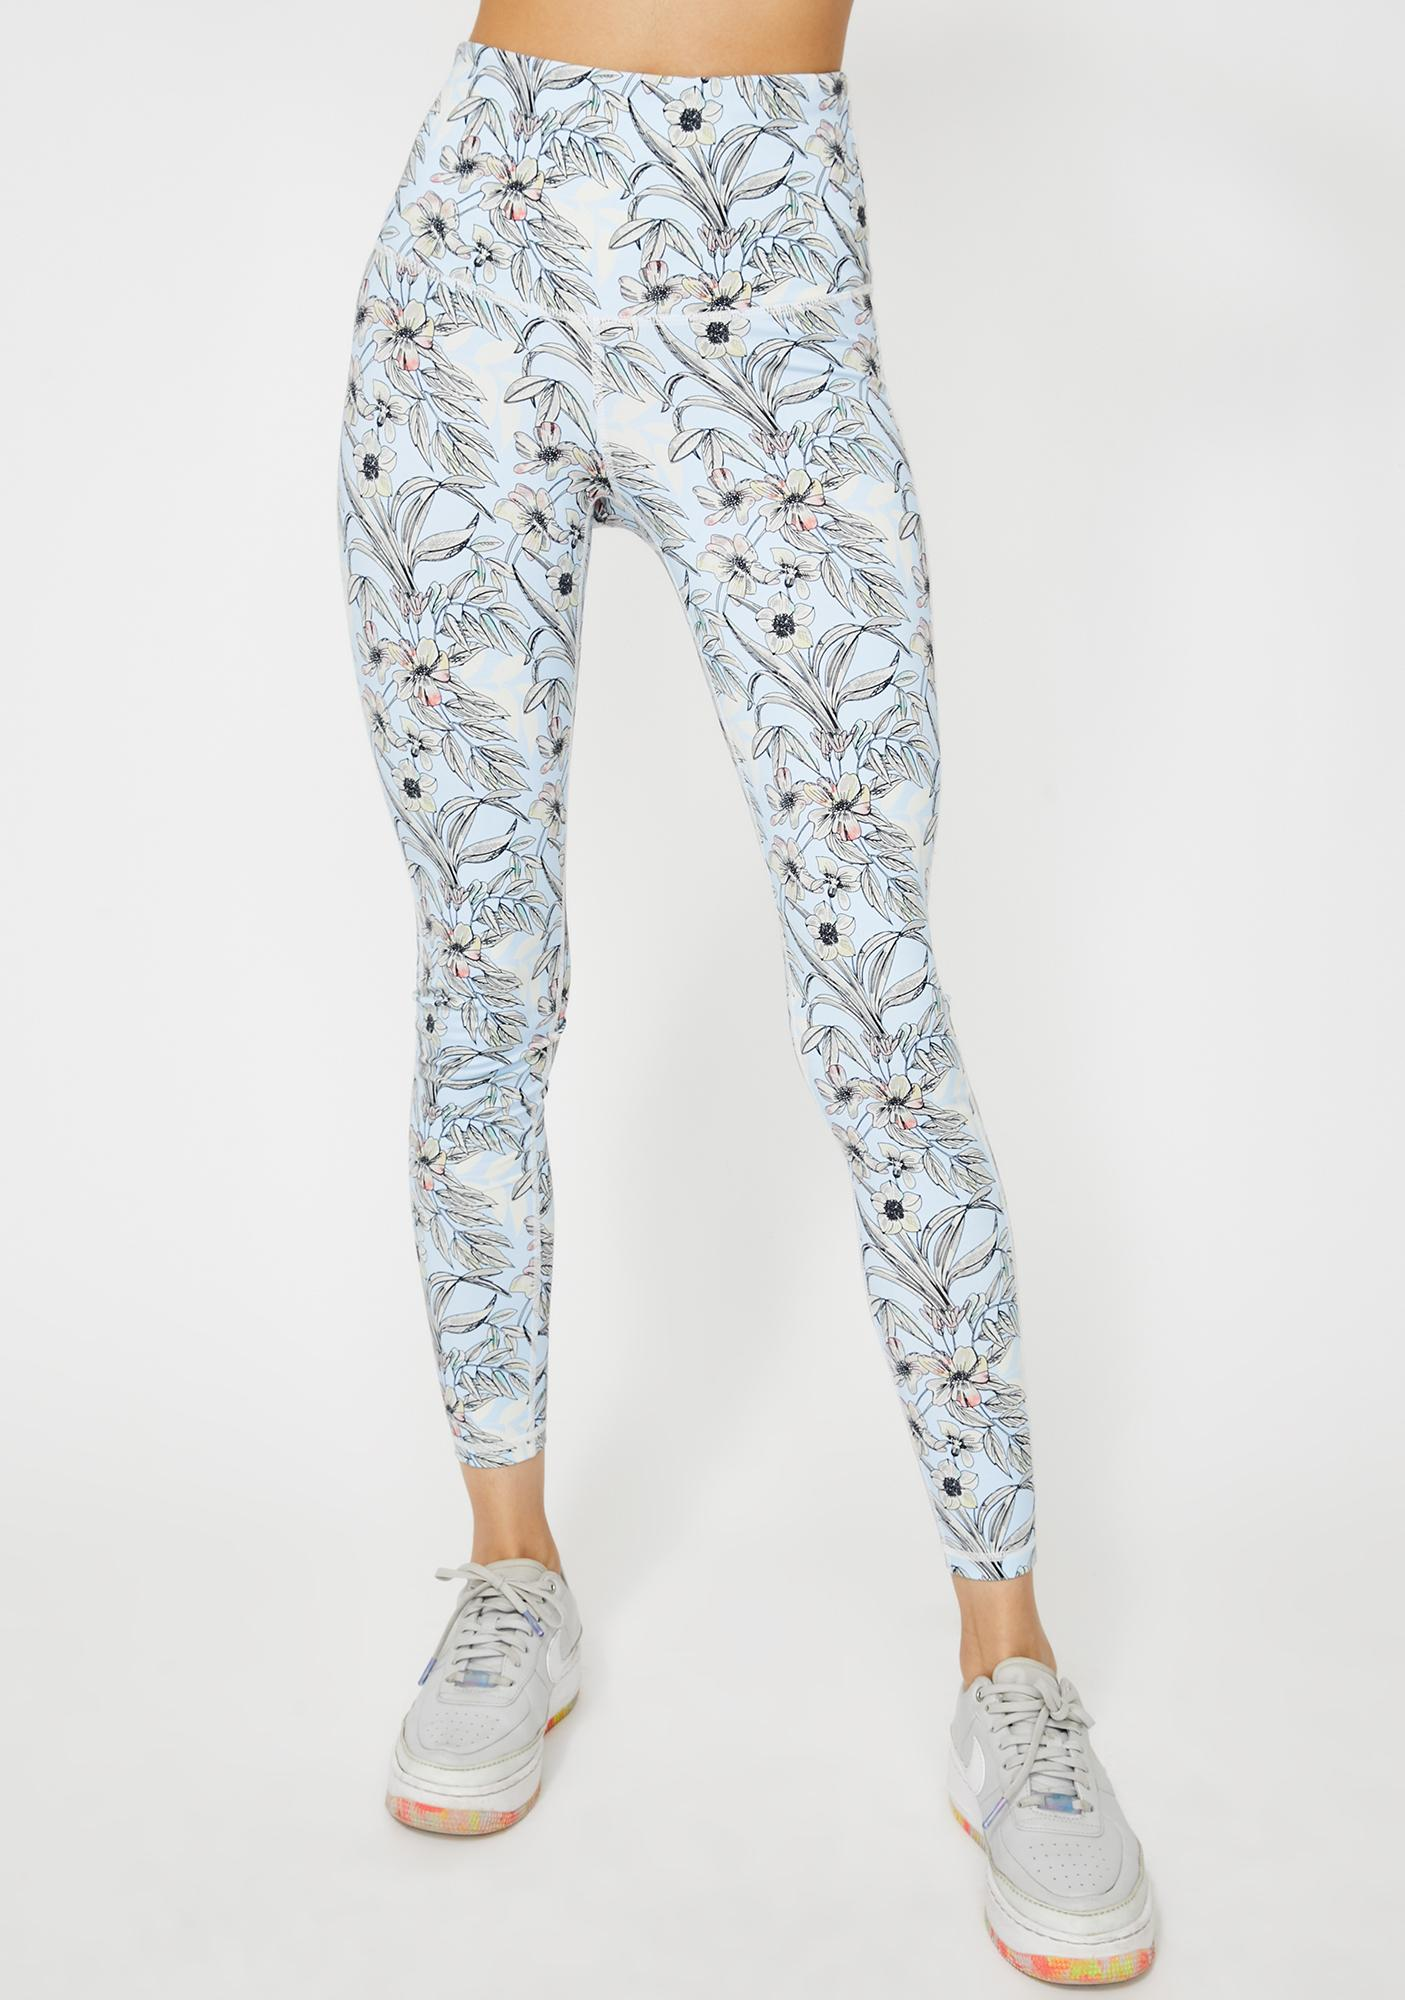 Growing Energy Floral Leggings by Dolls Kill